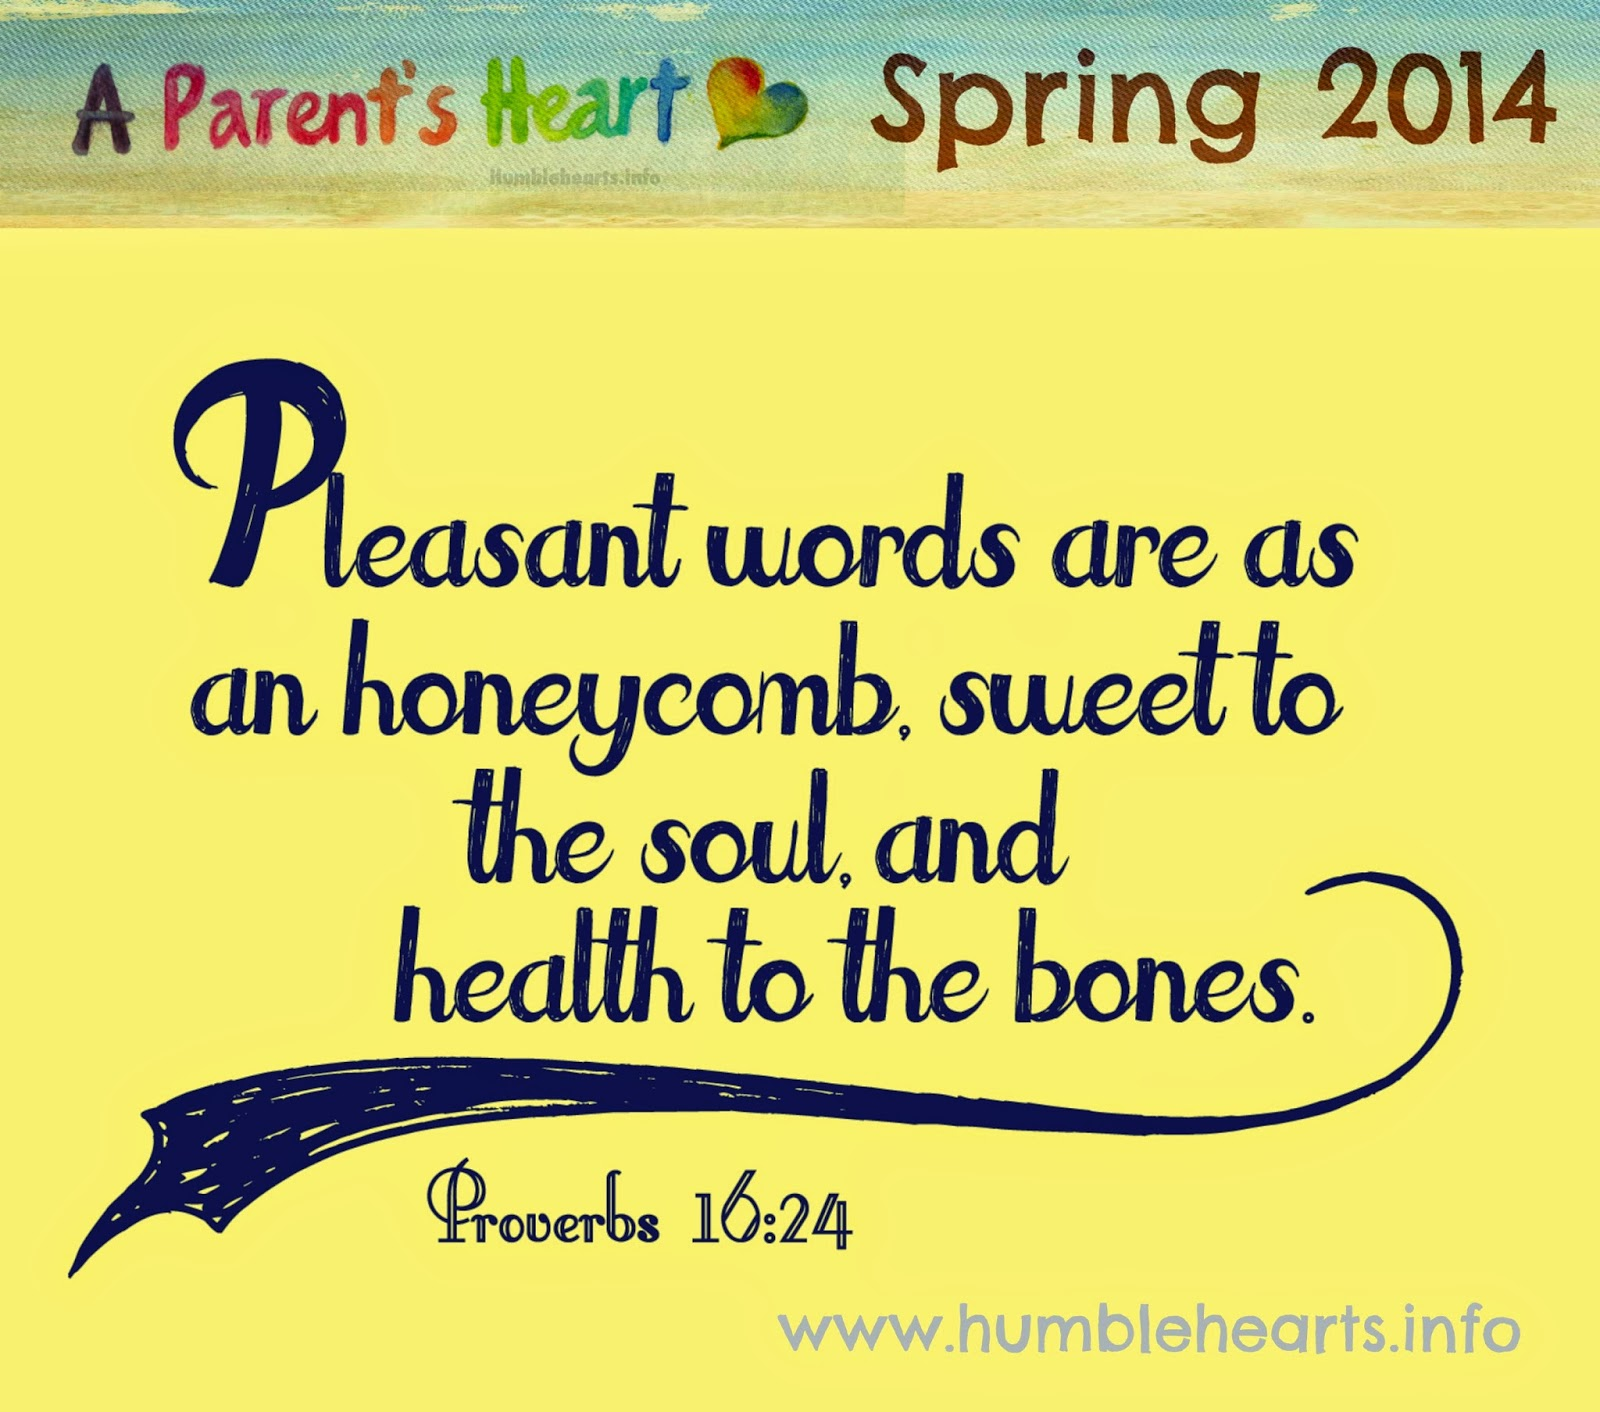 http://www.humblehearts.info/2014/04/a-parents-heart-pleasant-words-proverbs.html